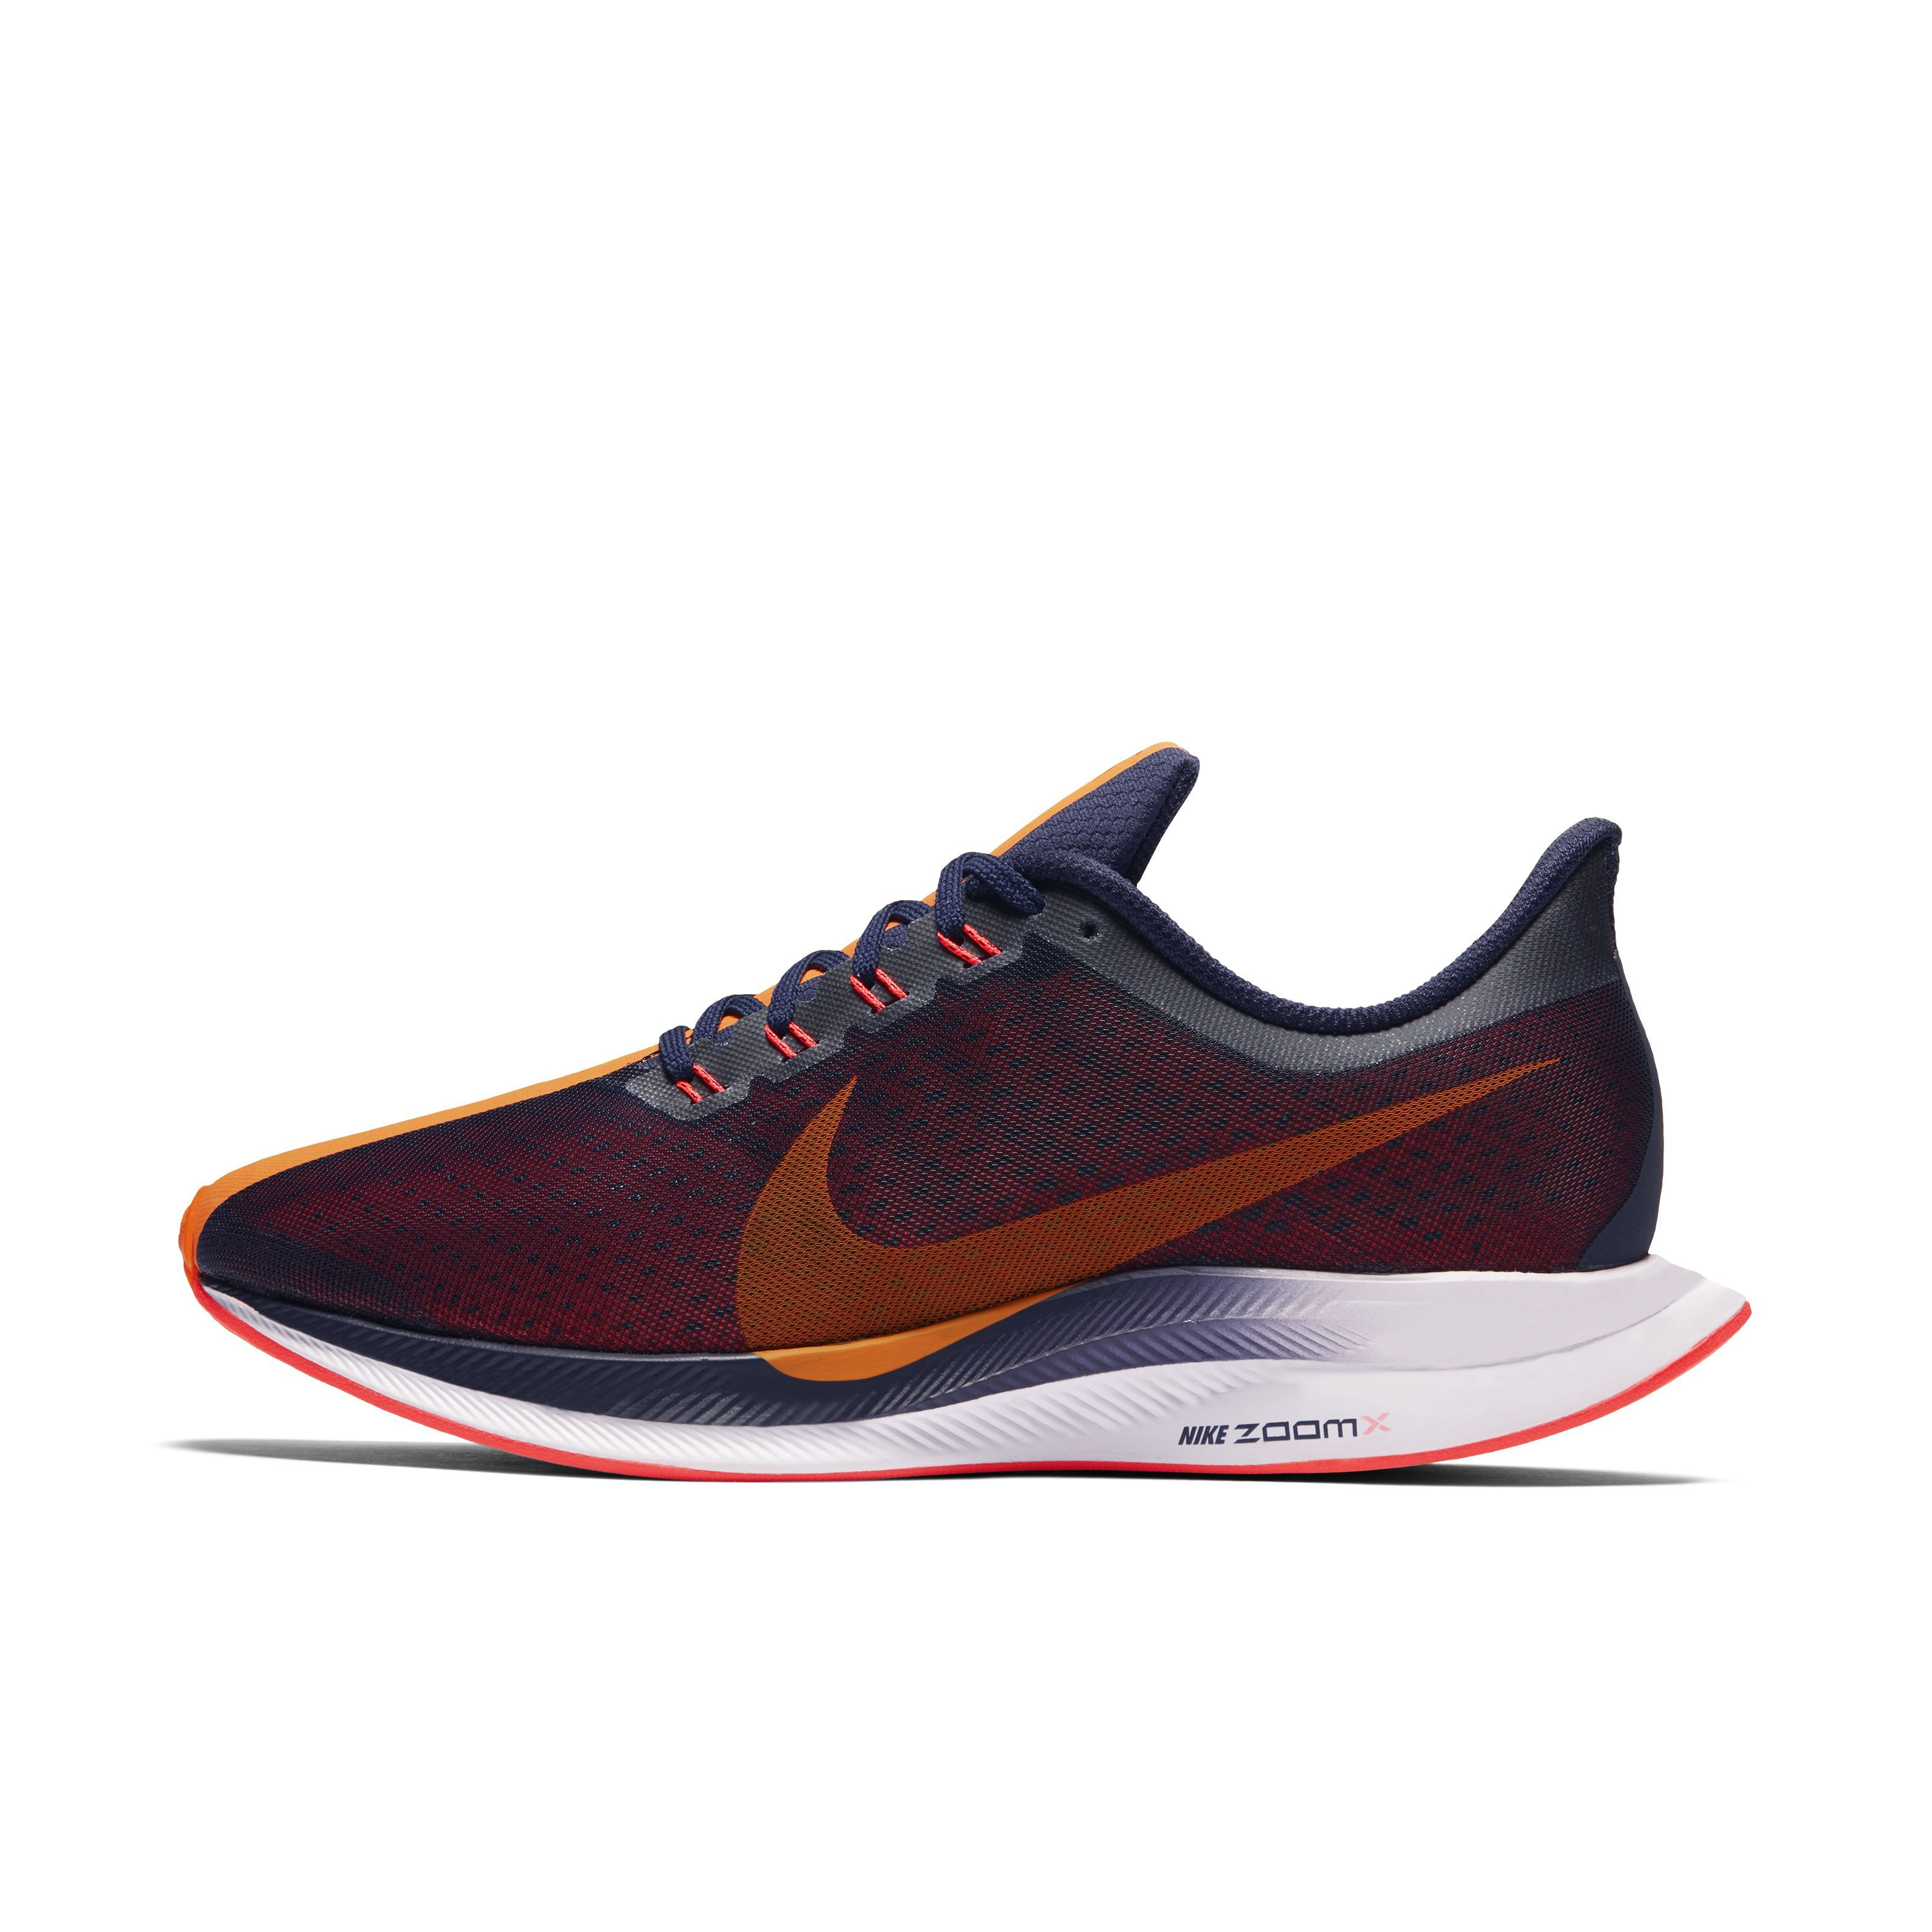 new arrival 385c0 e963c Nike Sneakers Are Discounted Up To 40% Off - Nike Shoes For Women Sale